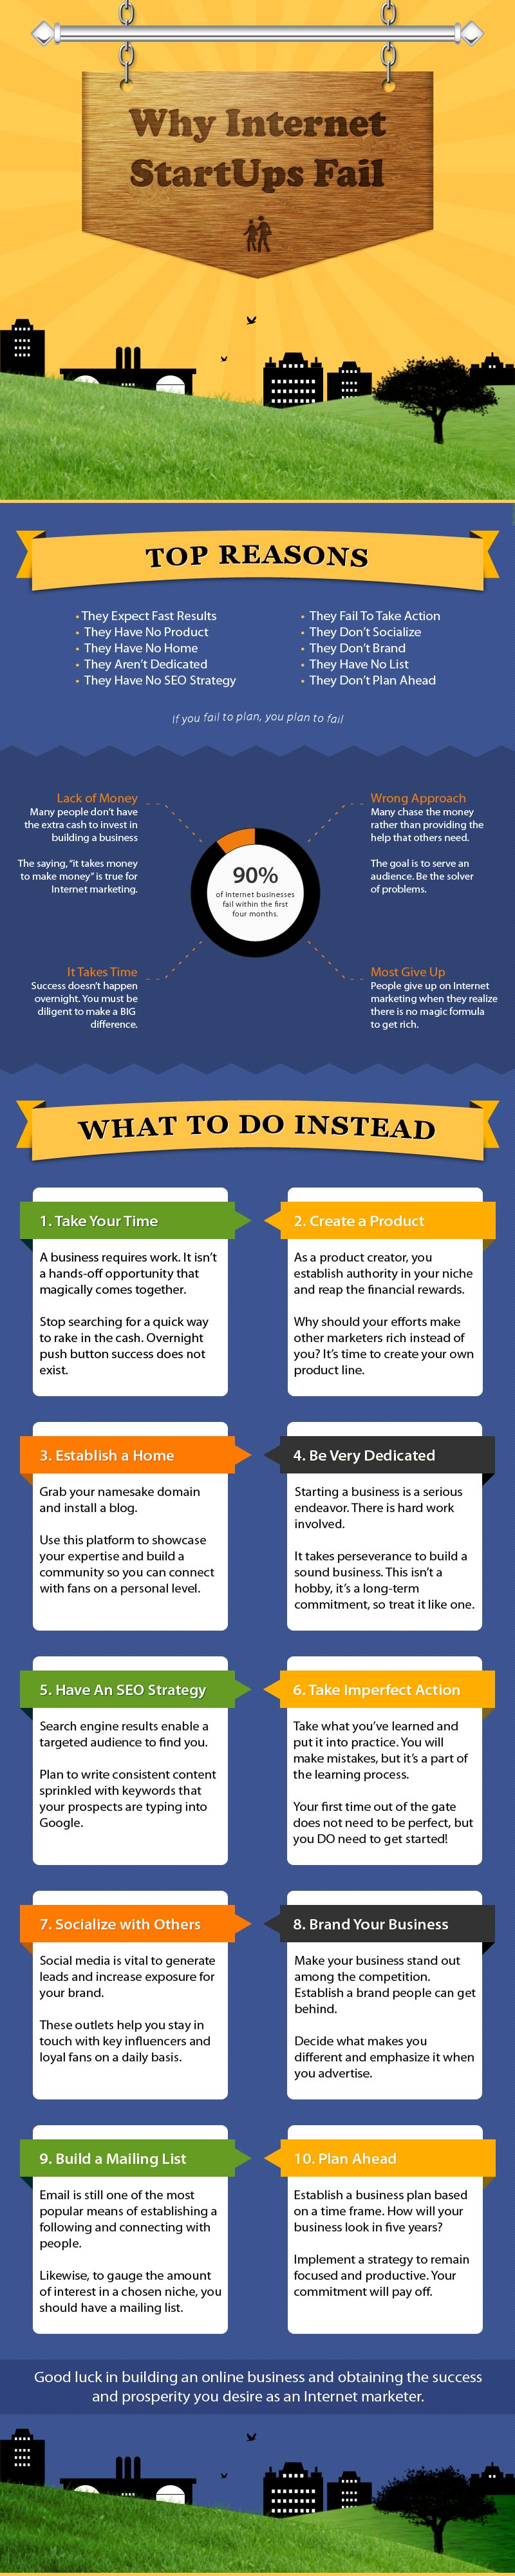 Infographic on 10 Reasons Why Internet Startups Fail